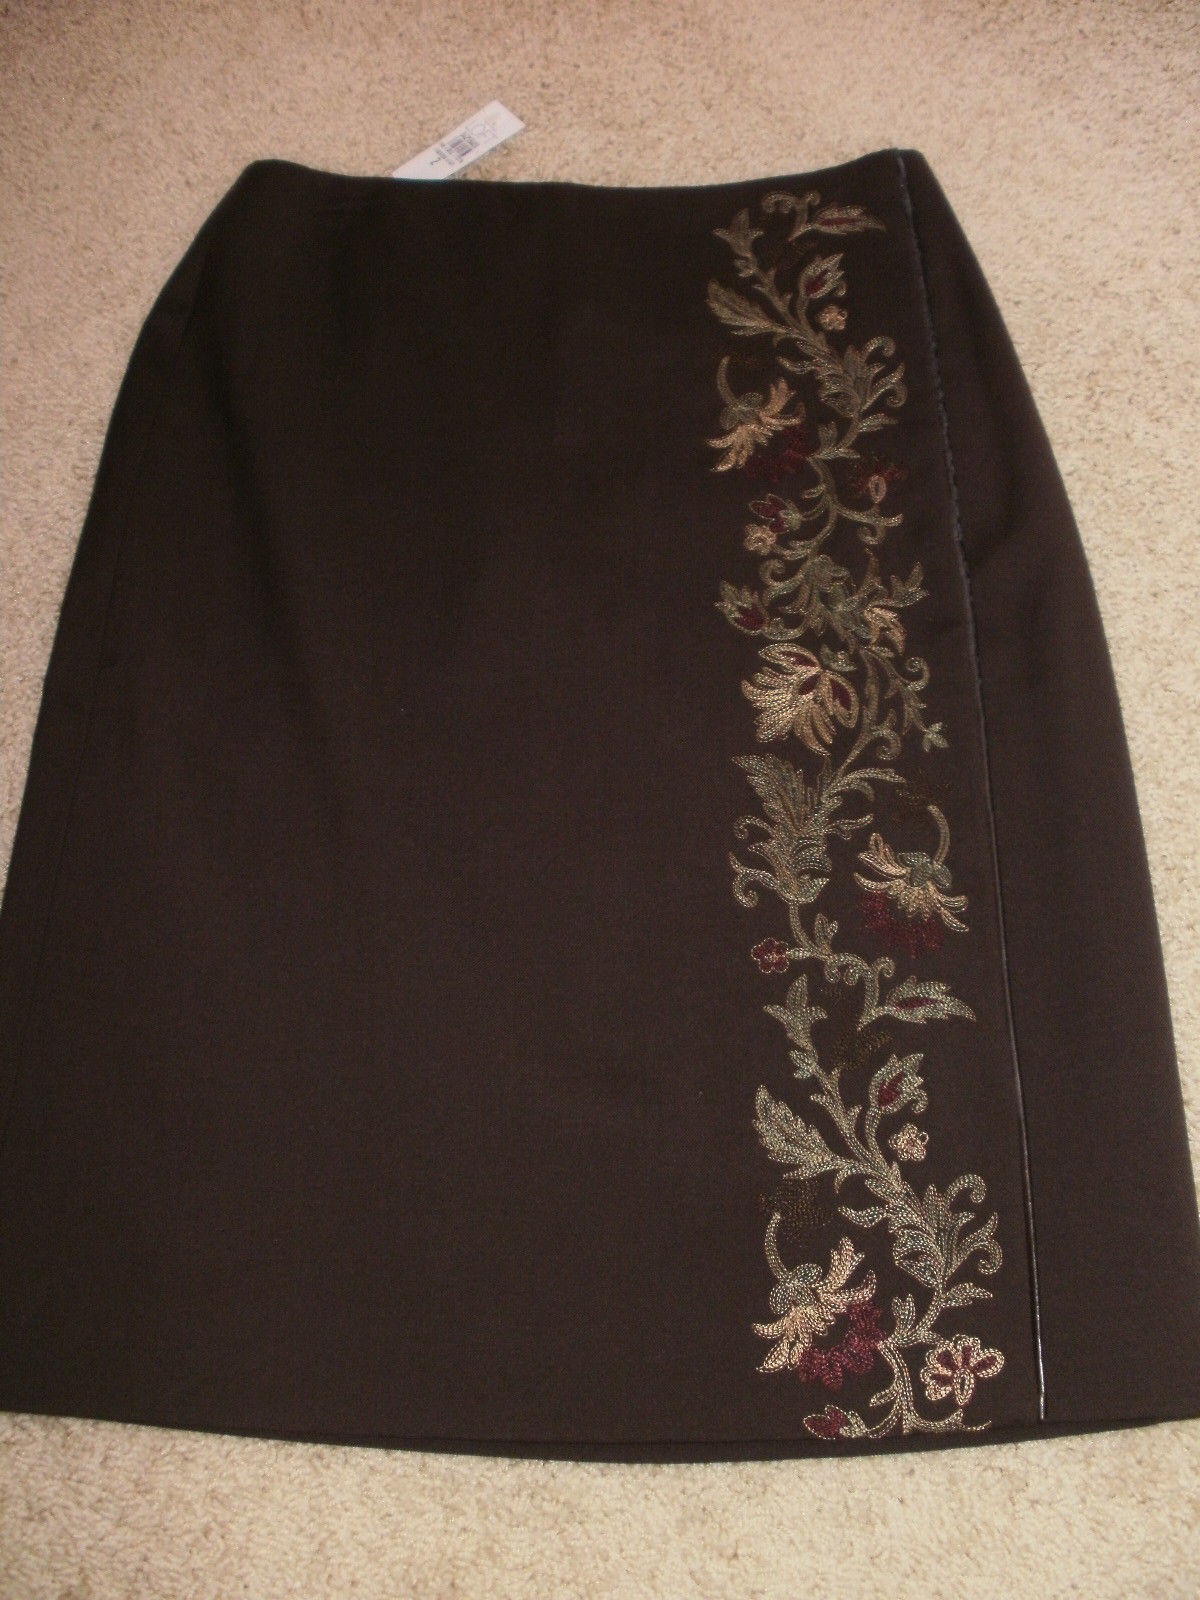 d4e4063317 S l1600. S l1600. Previous. NEW NWT Ann Taylor LOFT Embroidered Brown Wool  Blend Faux Wrap SKIRT Ms Size 2